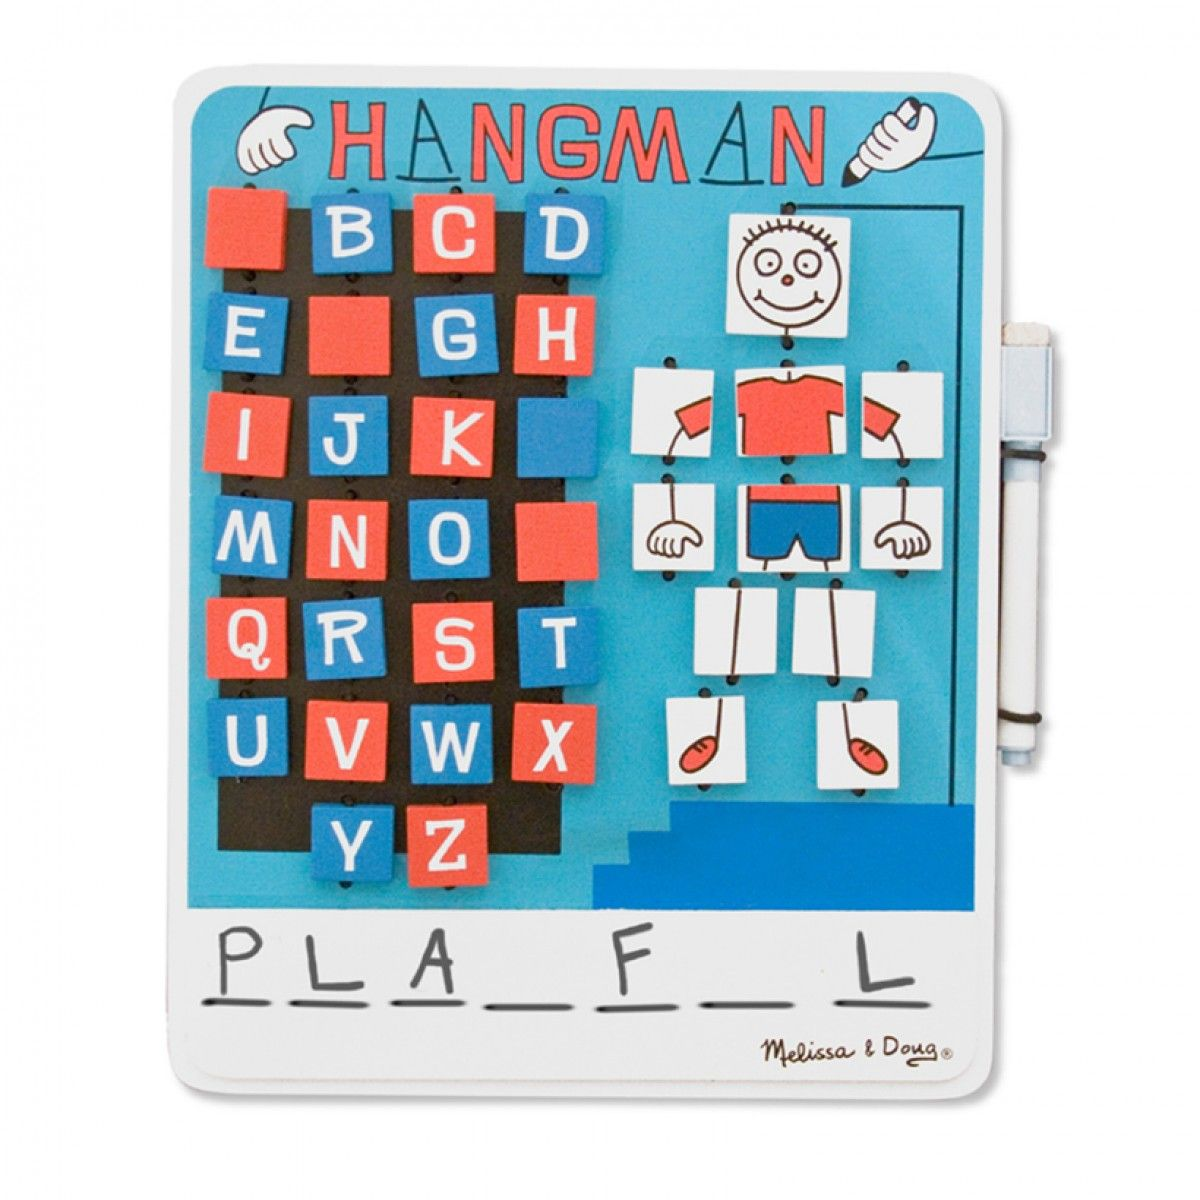 Planning on traveling this summer? Keep your little ones occupied on long journeys with this super fun Melissa & Doug Hangman travel game!